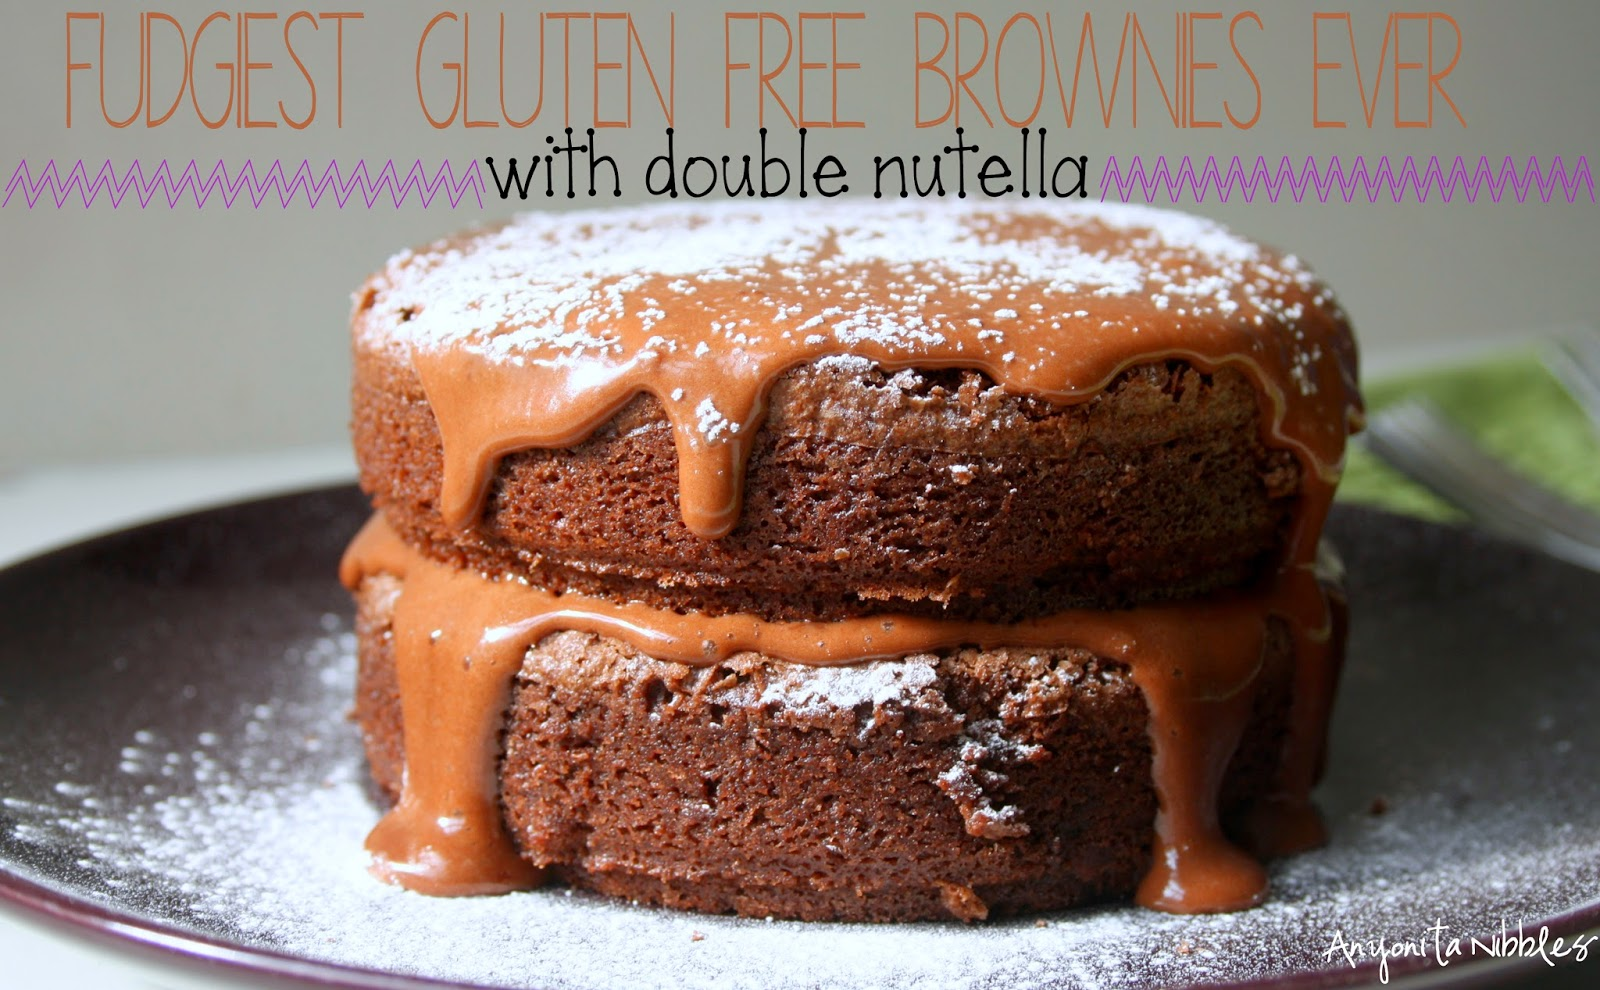 The fudgiest gluten free brownies ever. No dispute. from Anyonita Nibbles